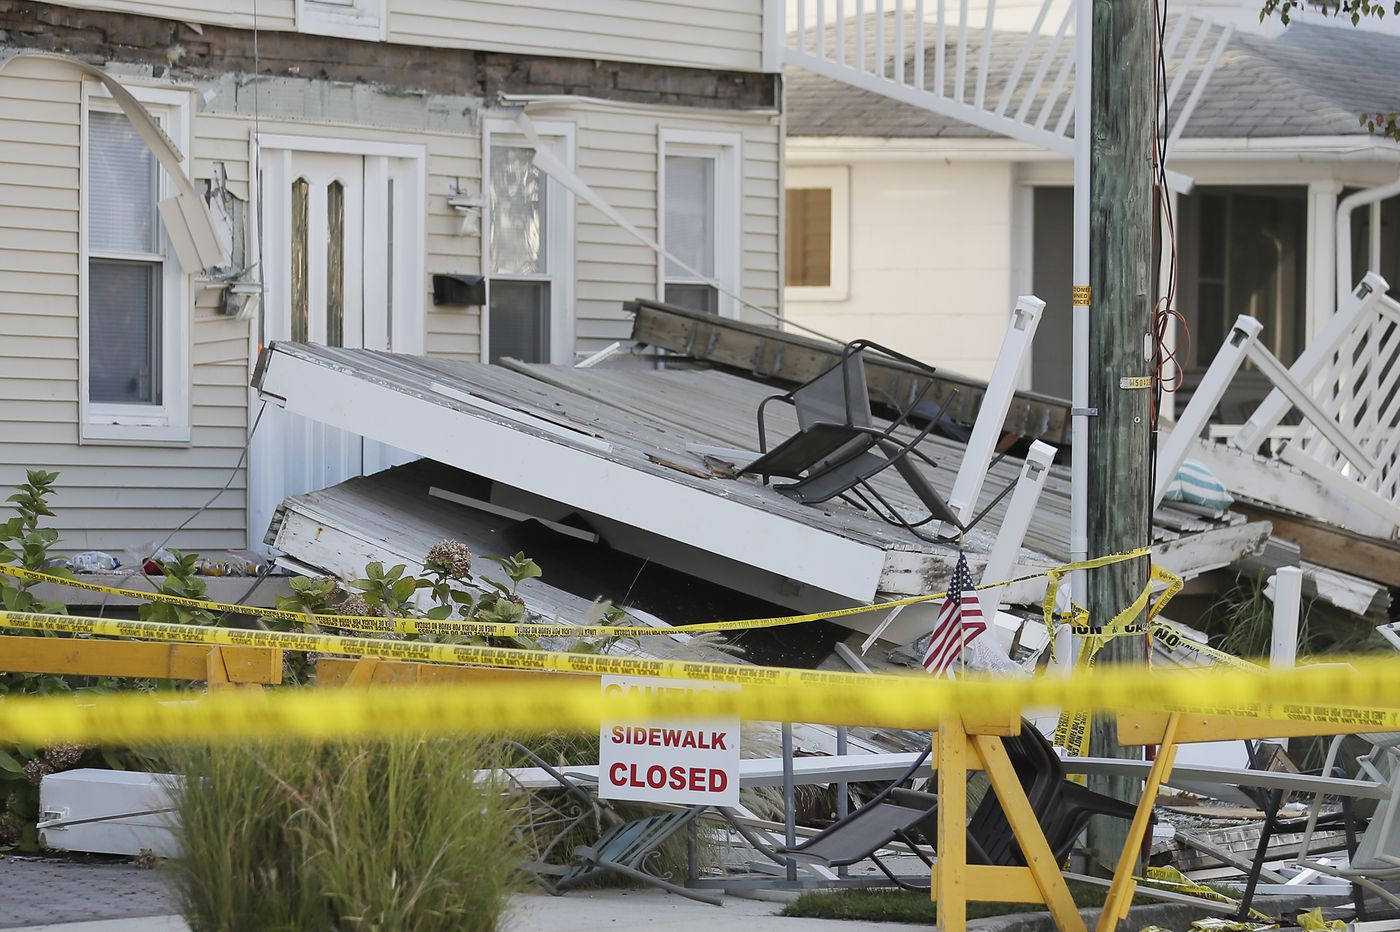 After deck collapse, Wildwood mayor says everyone on the island needs to inspect their decks